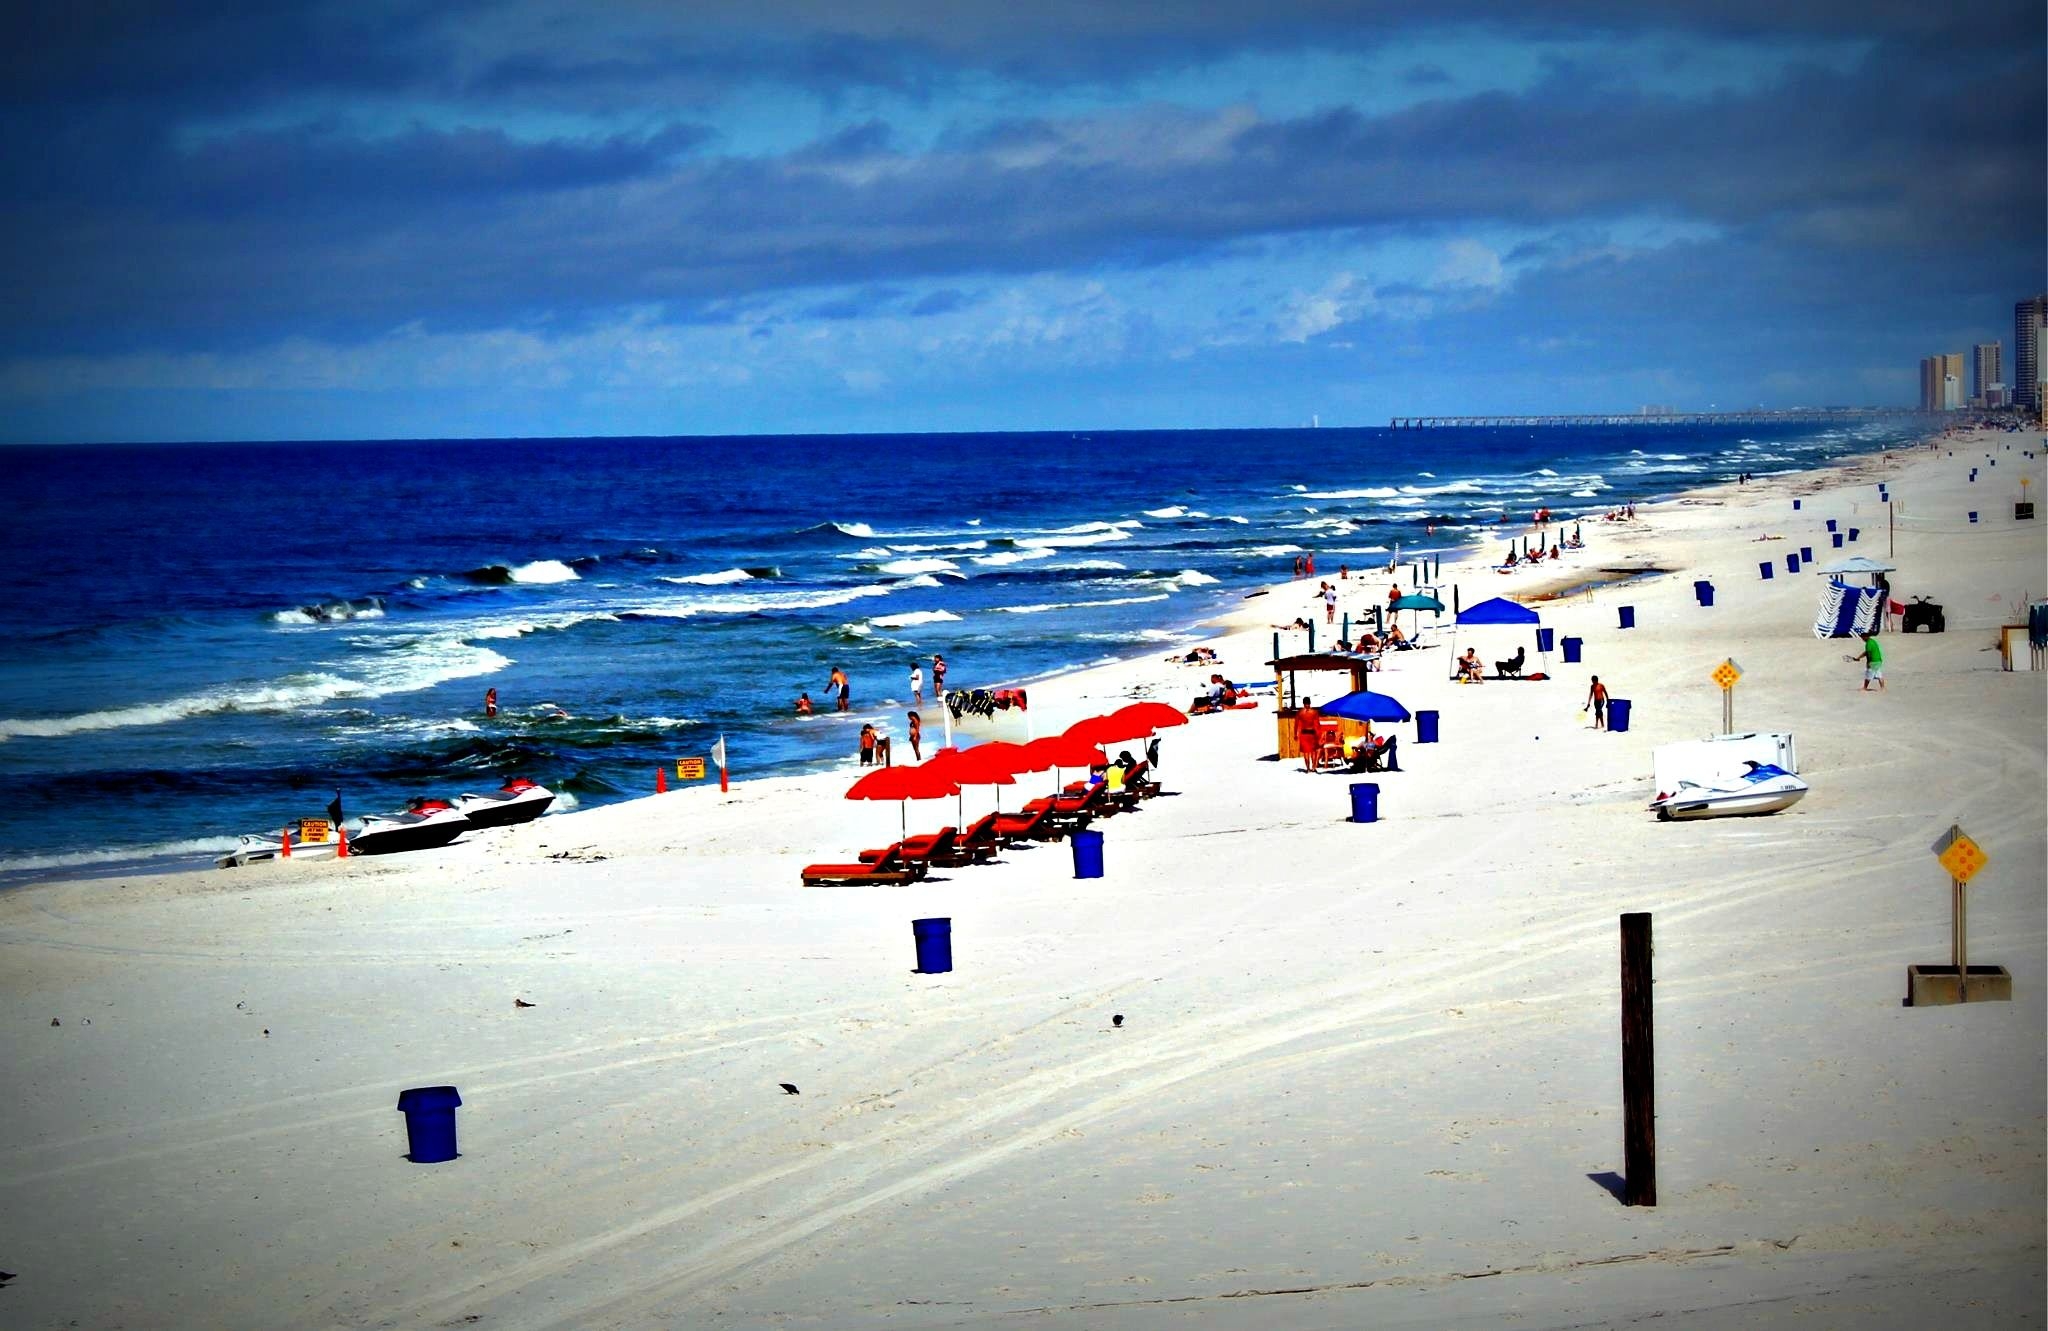 Beach Scene At The Chateau Clean Comfortable And Affordable The Chateau Is Conveniently Located Rig Panama City Panama Panama City Beach Panama City Condos